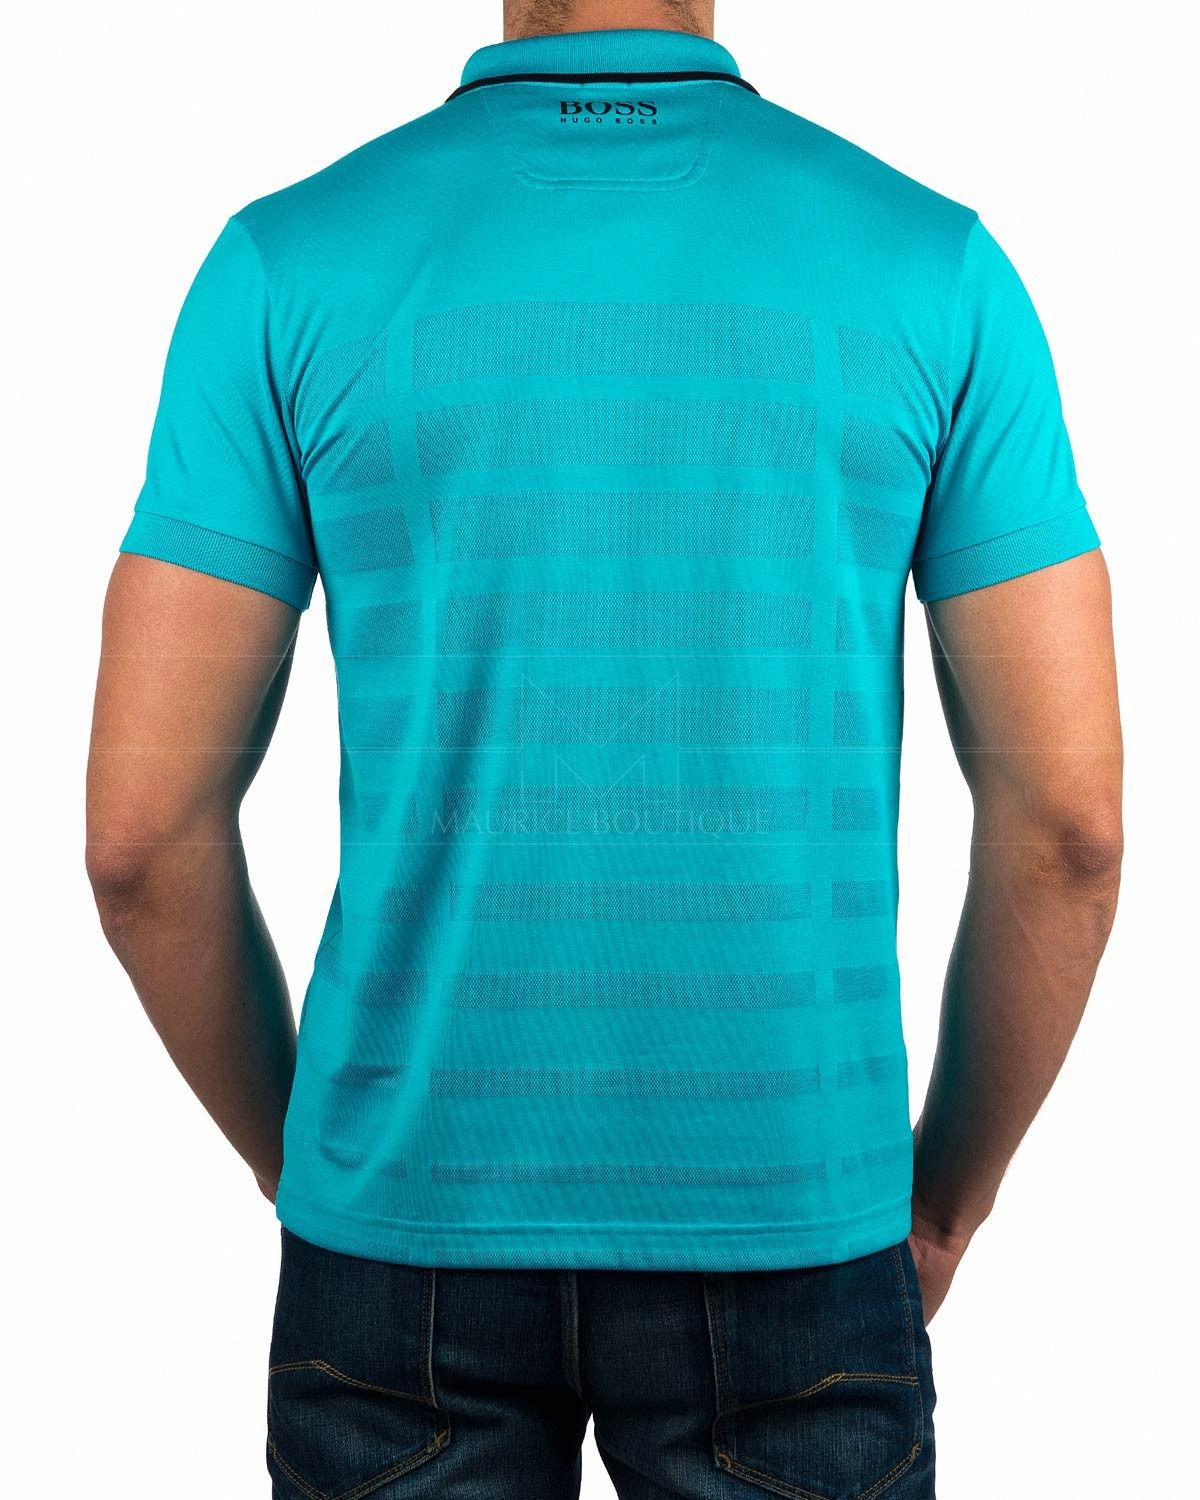 04be041a340f8 Polos Hugo Boss - Pronghorn Pro65% Cotton 35% Polyester .